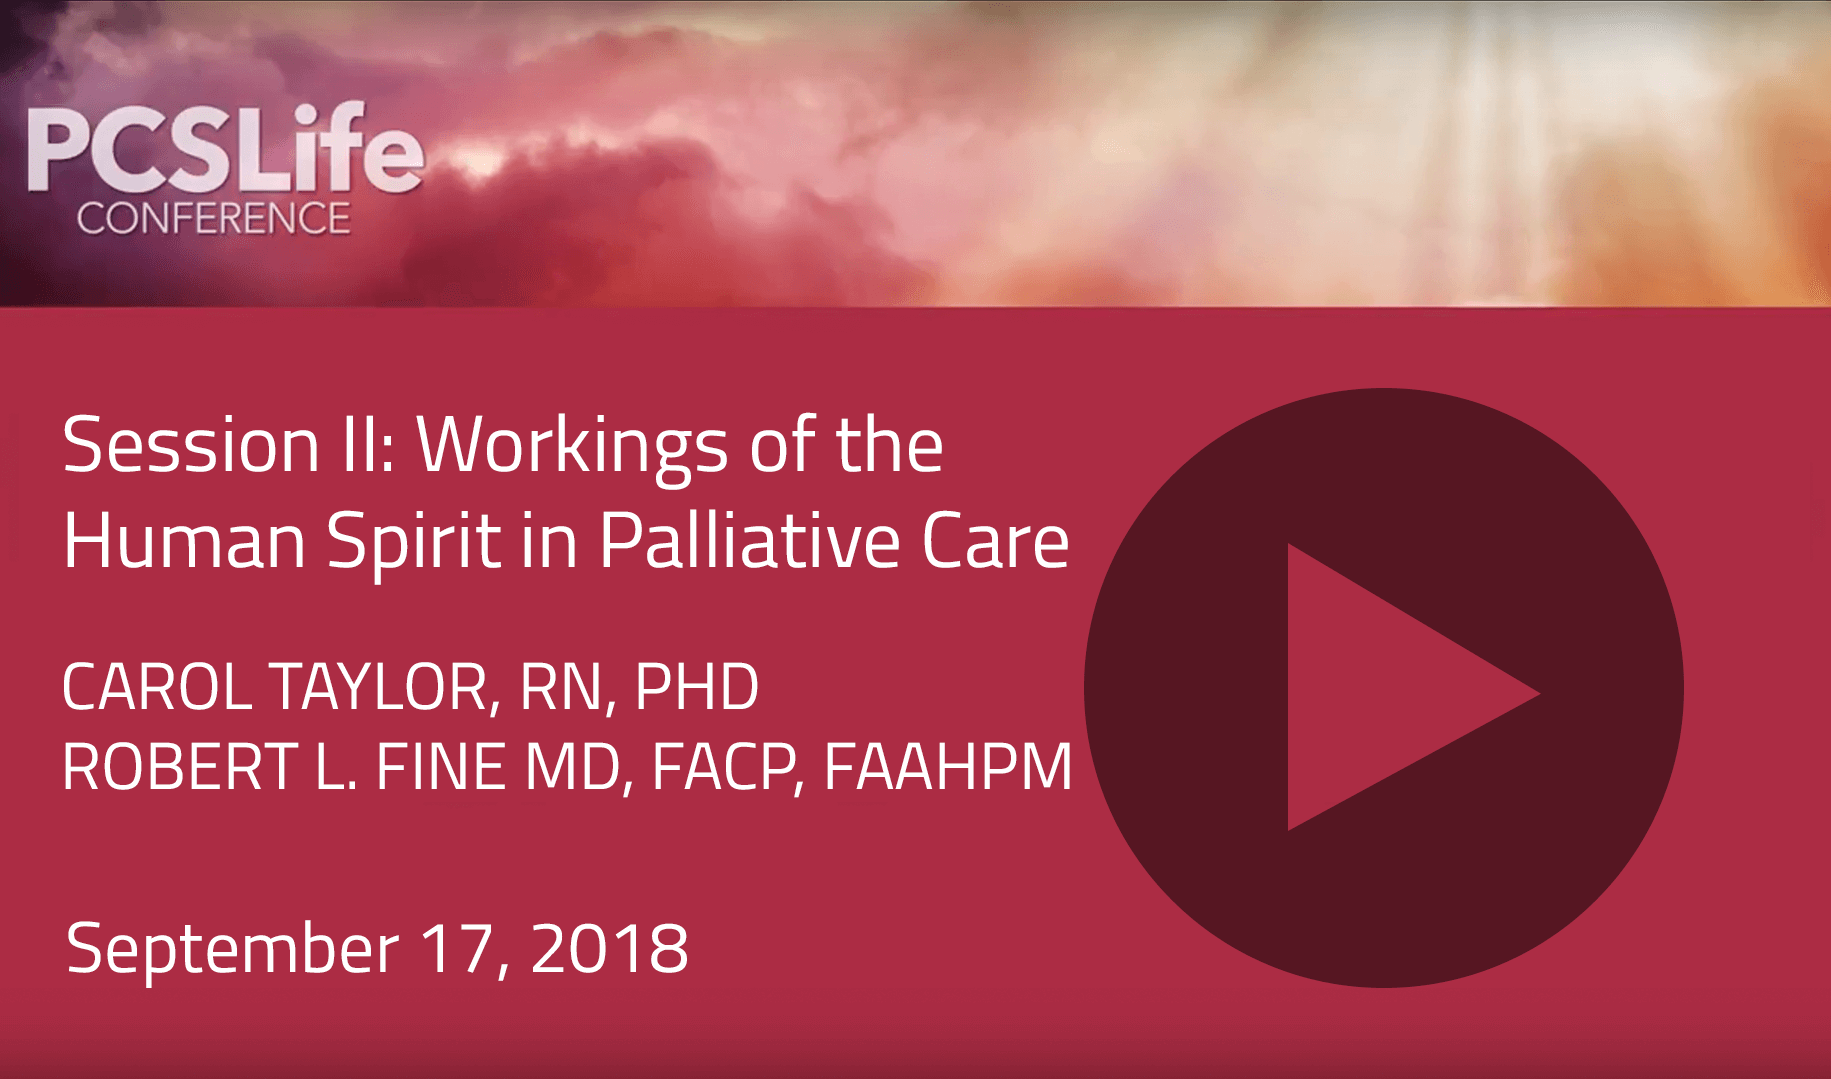 Session Two: Workings of the Human Spirit in Palliative Care by Carol Tayler and Robert L. Fine